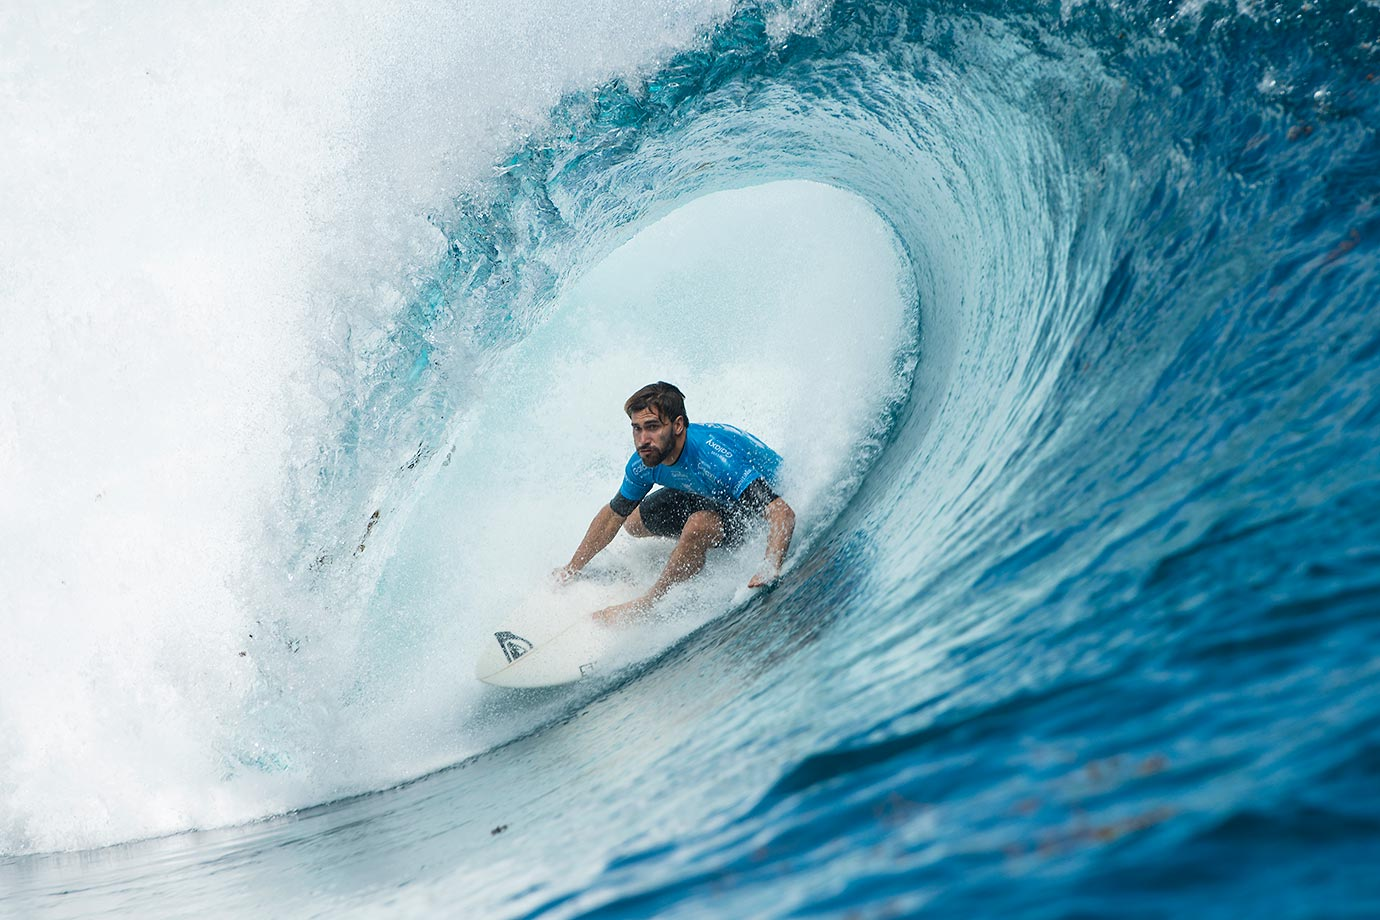 Aritz Aranburu from Spain defeated world number 2 Mick Fanning in Round 3 of the Billabong Pro in Teahupo'o, French Polynesia.